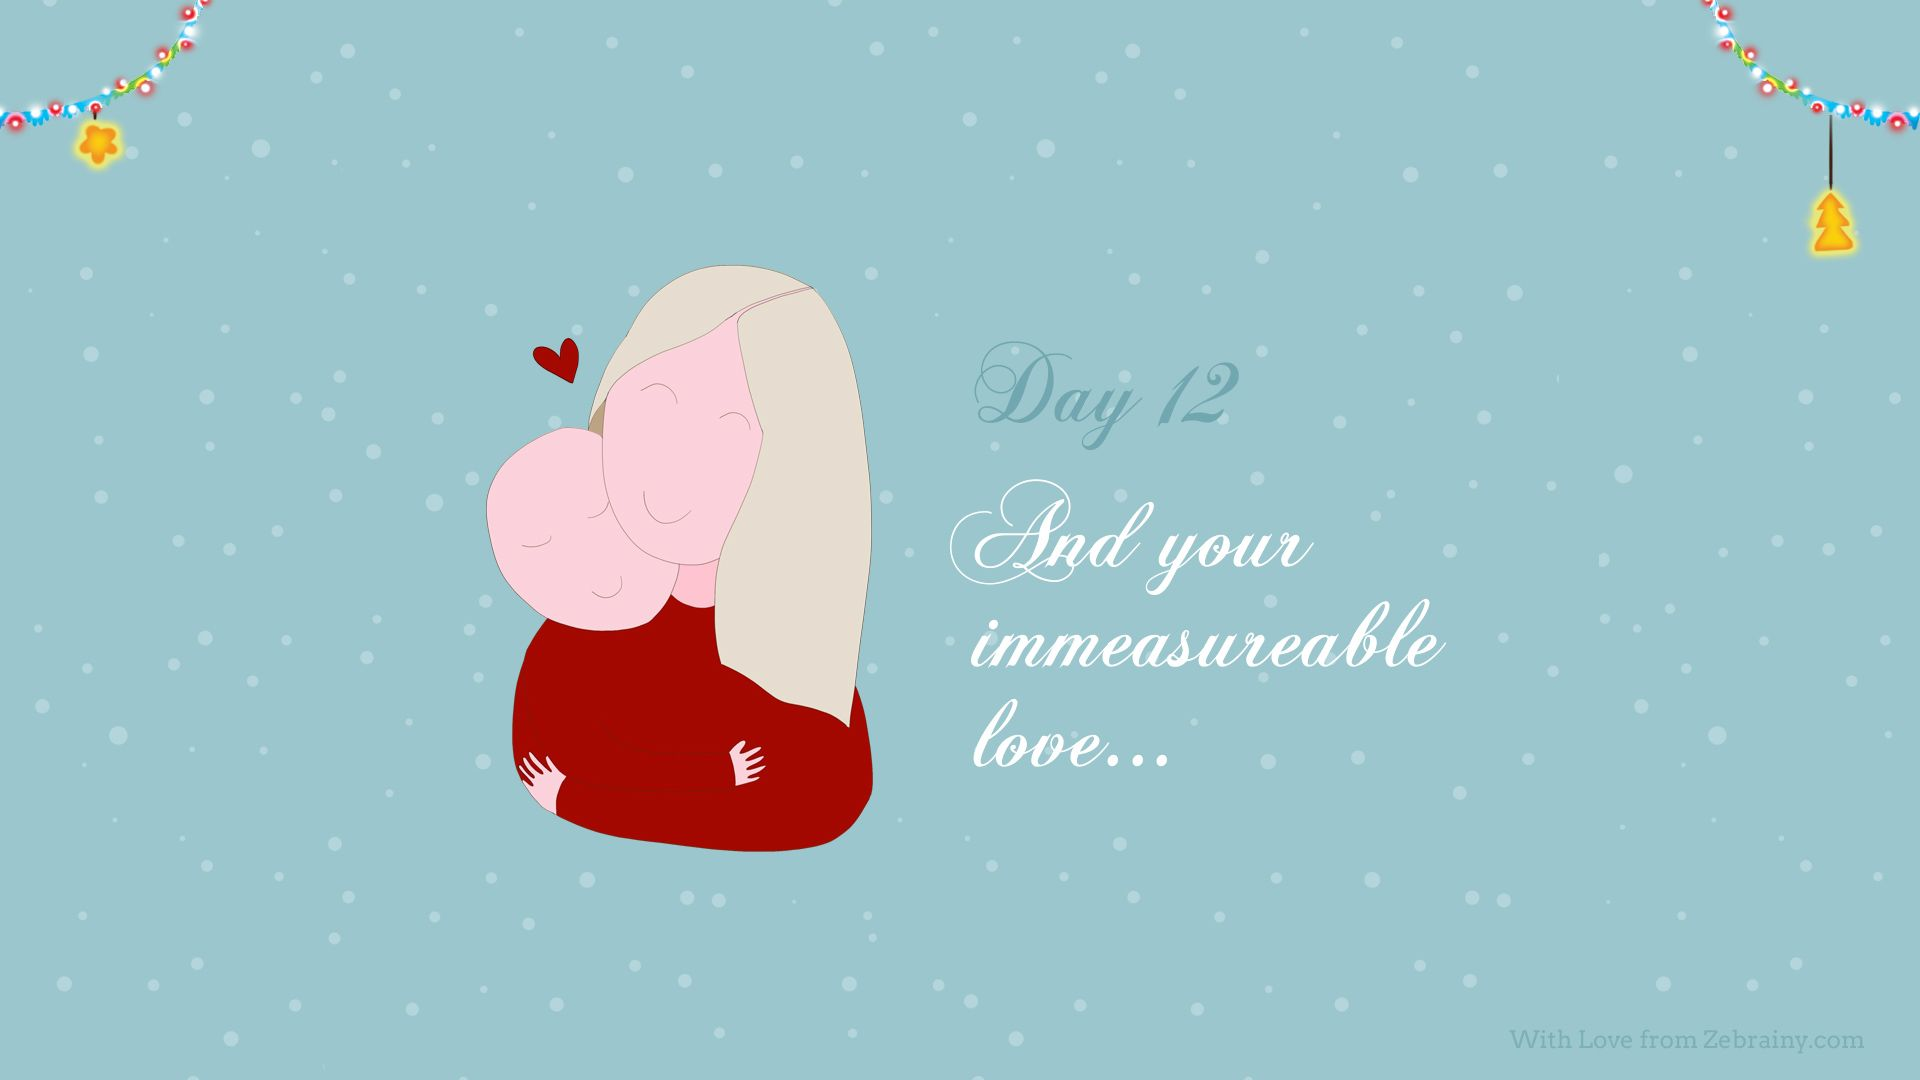 Christmas Love Story Card | Christmas Love e-cards: 25 days to ...